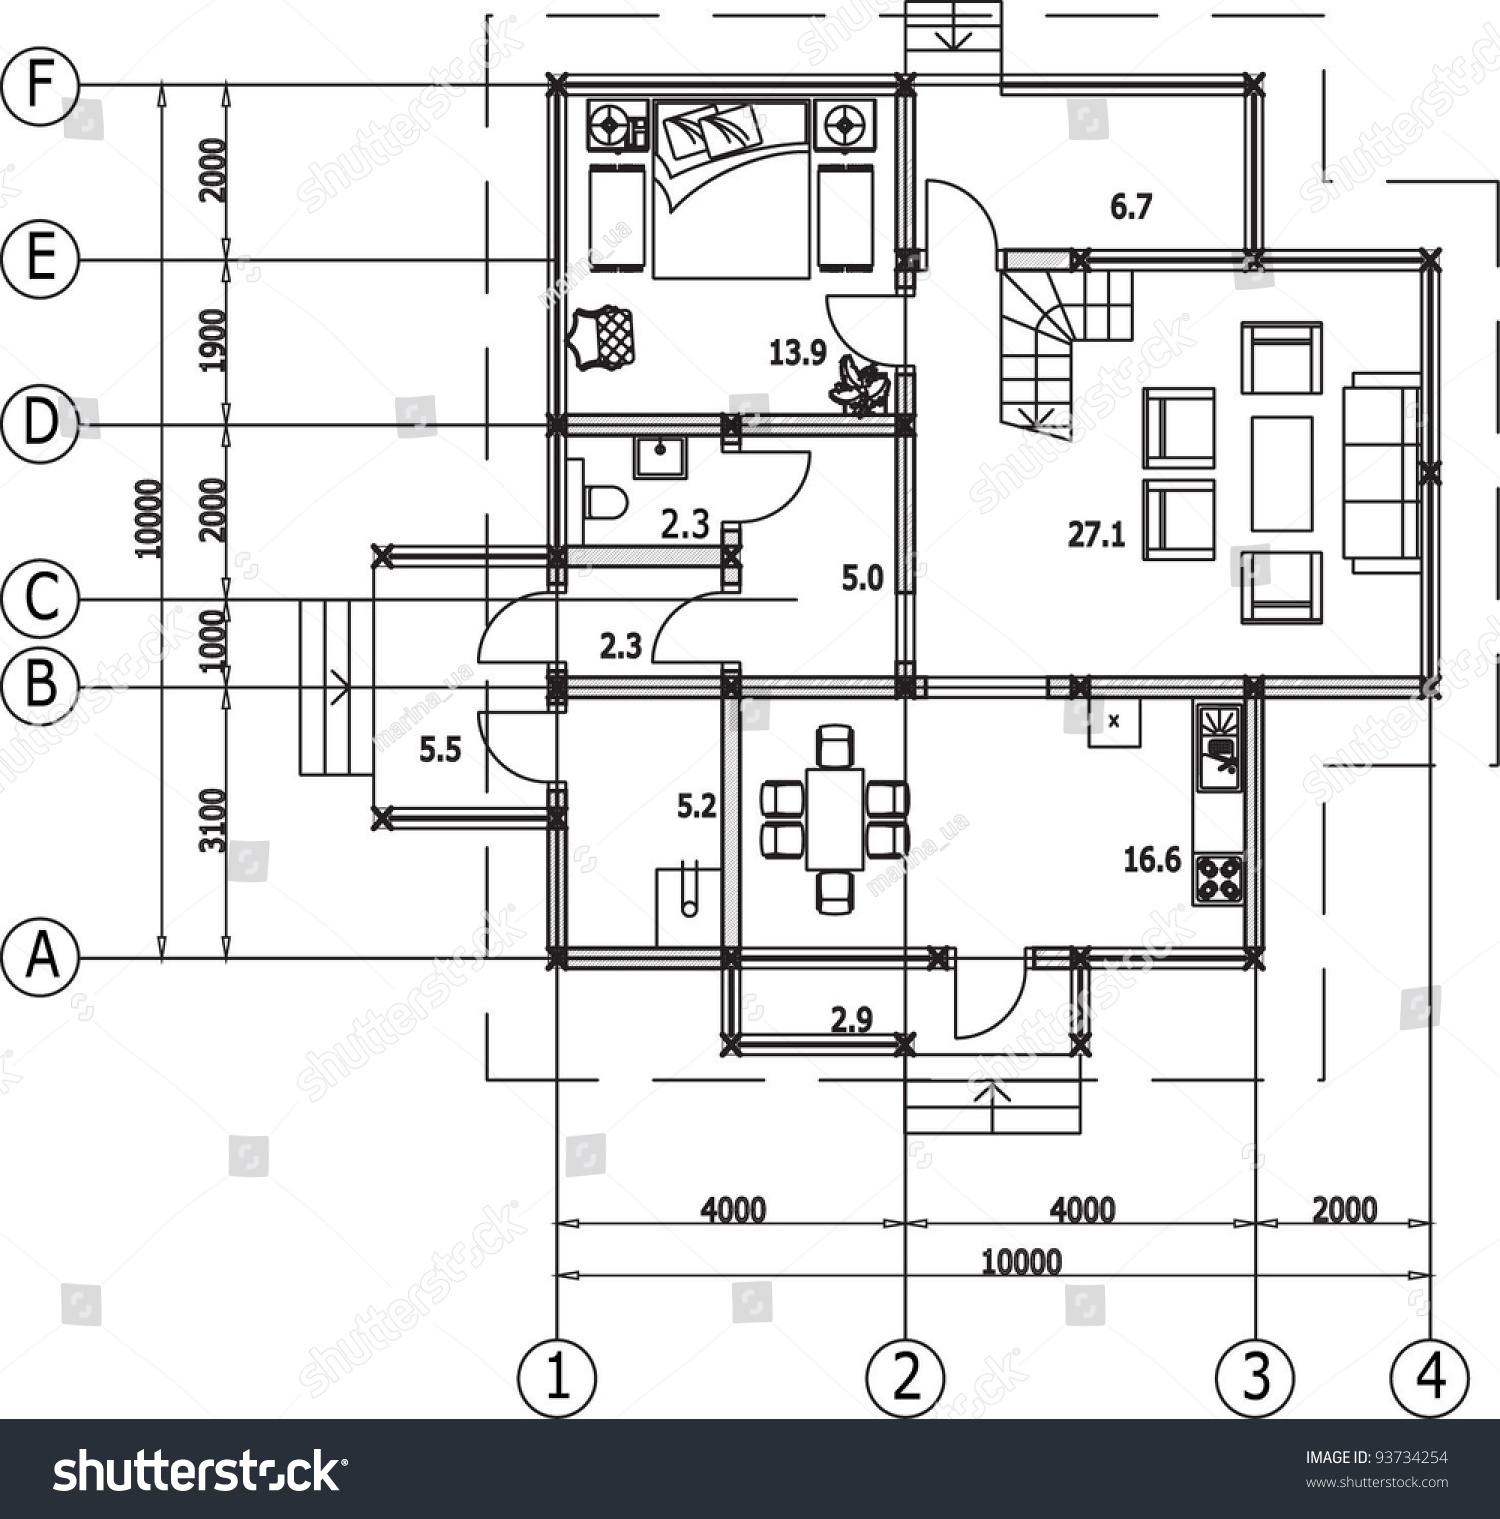 Architectural drawing house autocad vector stock vector Autocad house drawings